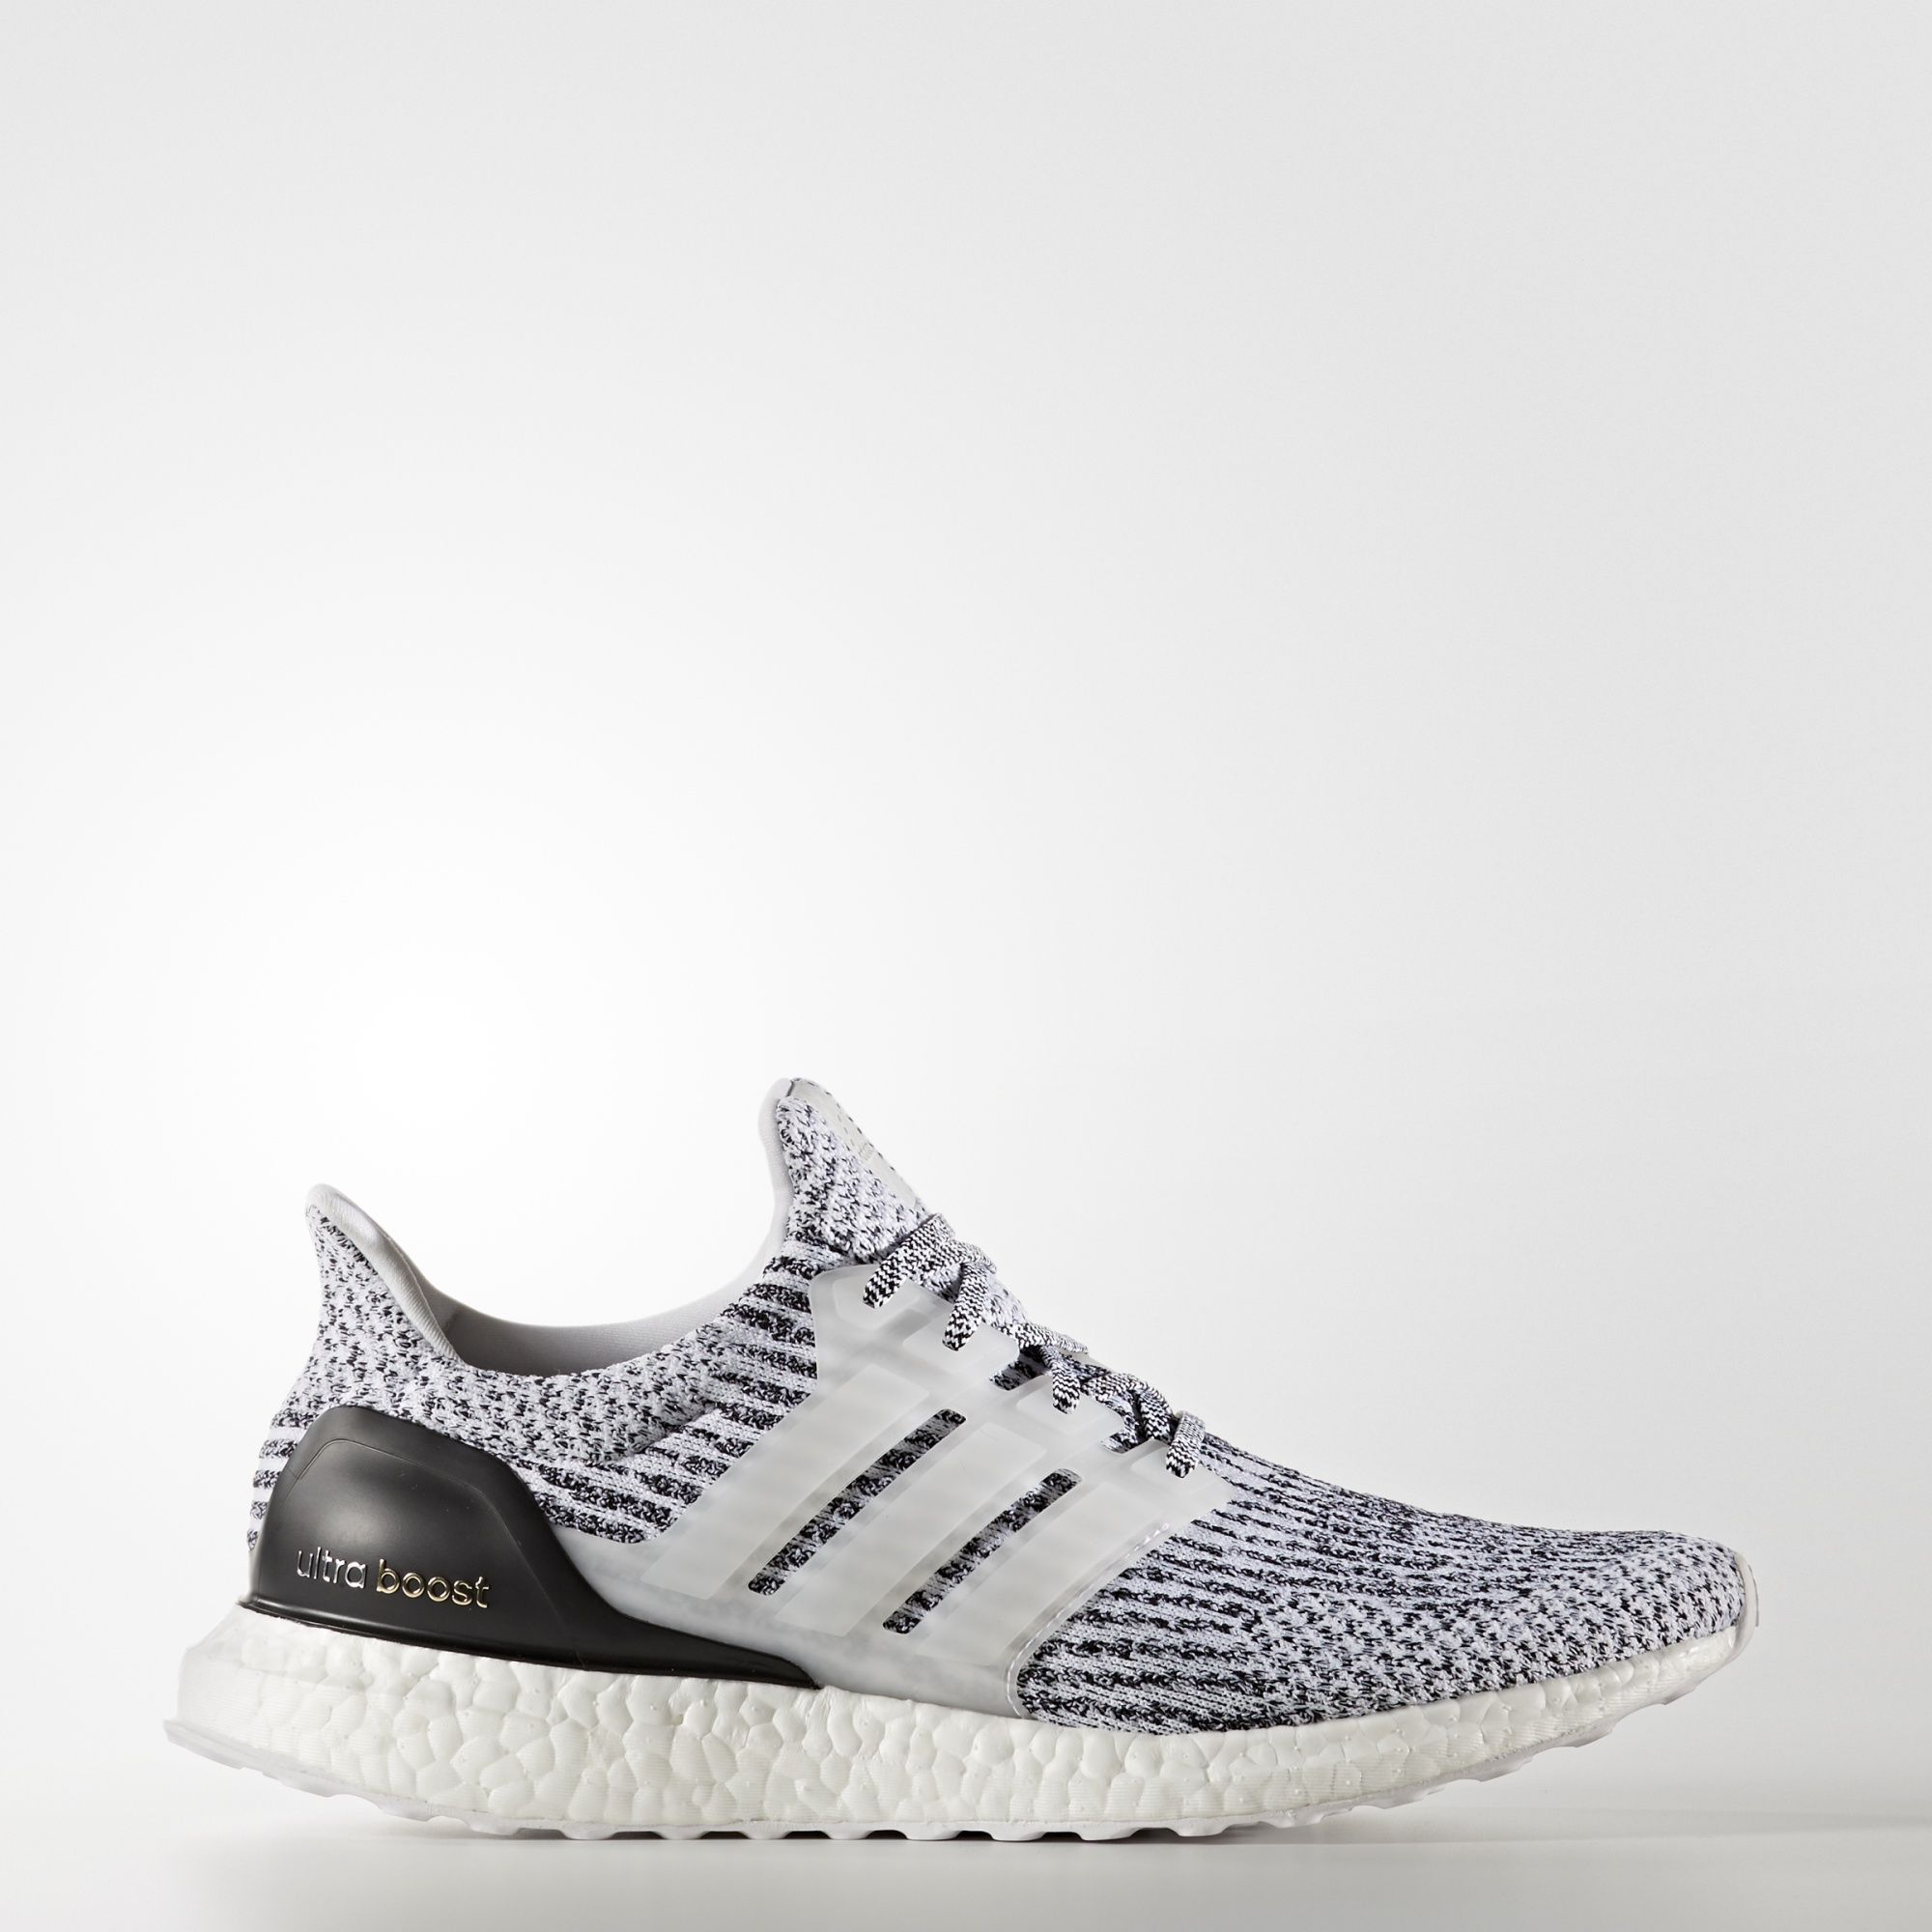 The adidas Ultra Boost 3.0 'Oreo' is Available Now - WearTesters